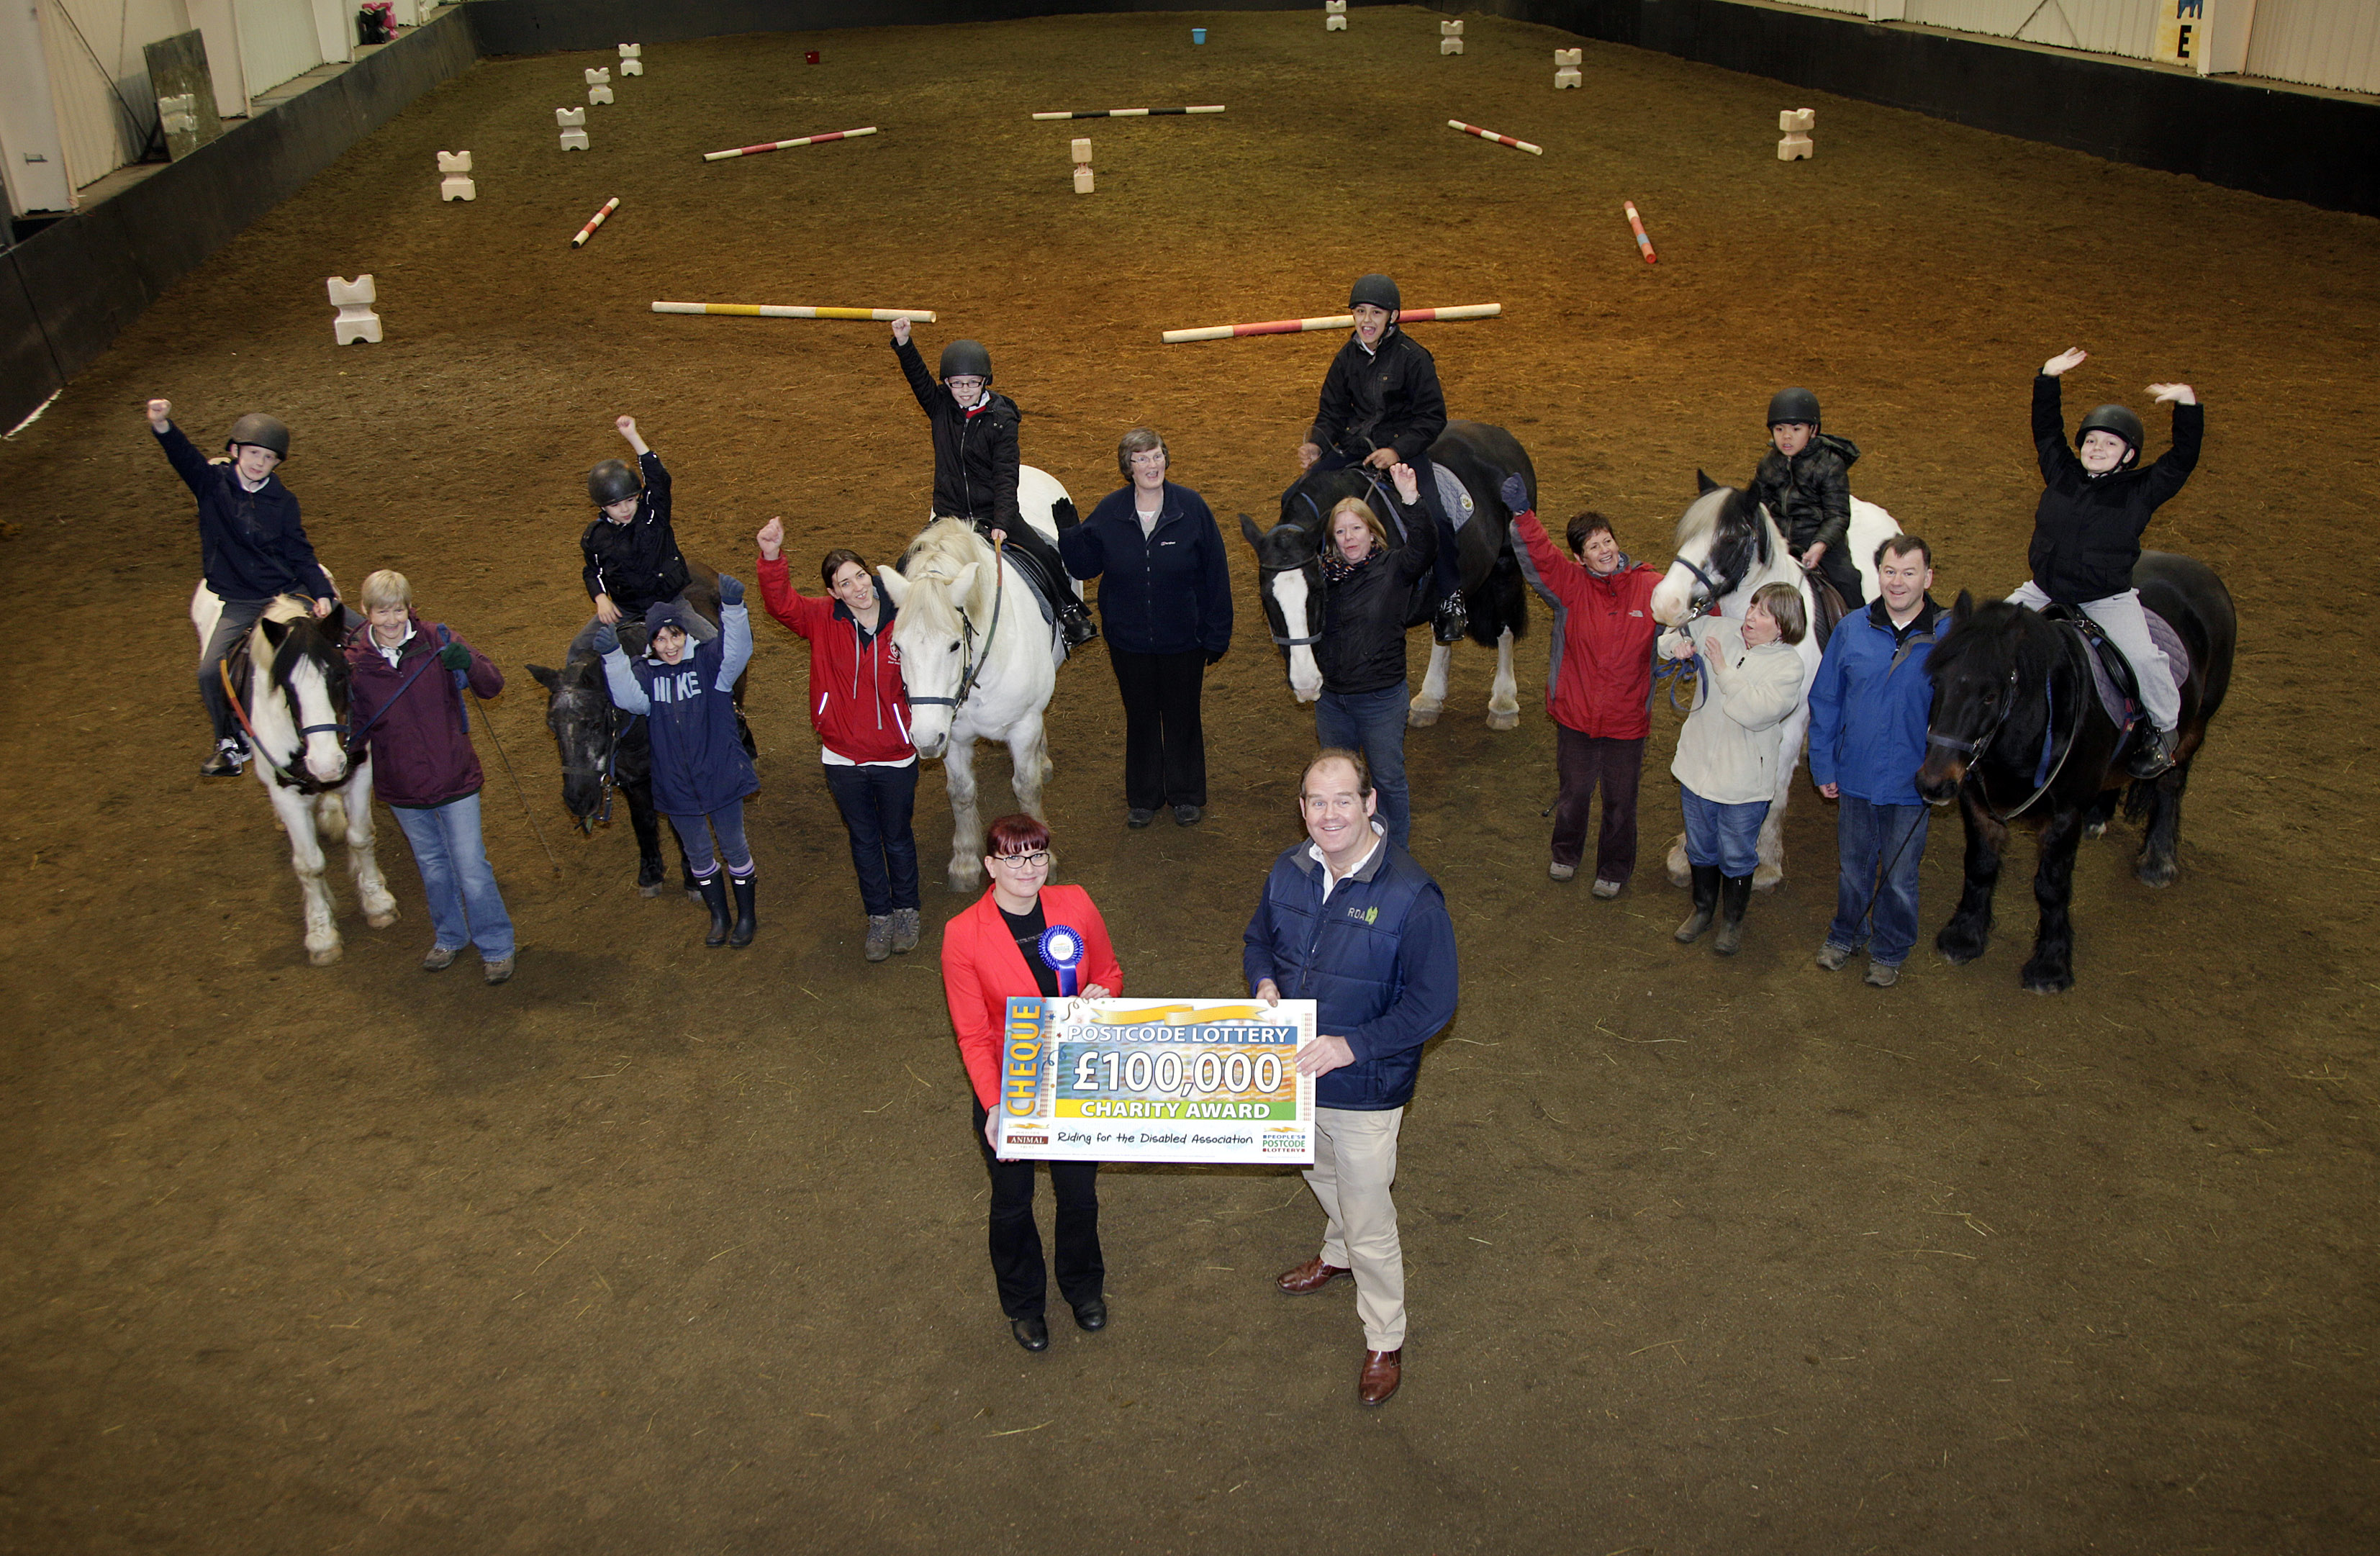 RDA Cheque 037 - Riding for the Disabled receive £100,000 from players of People's Postcode Lottery